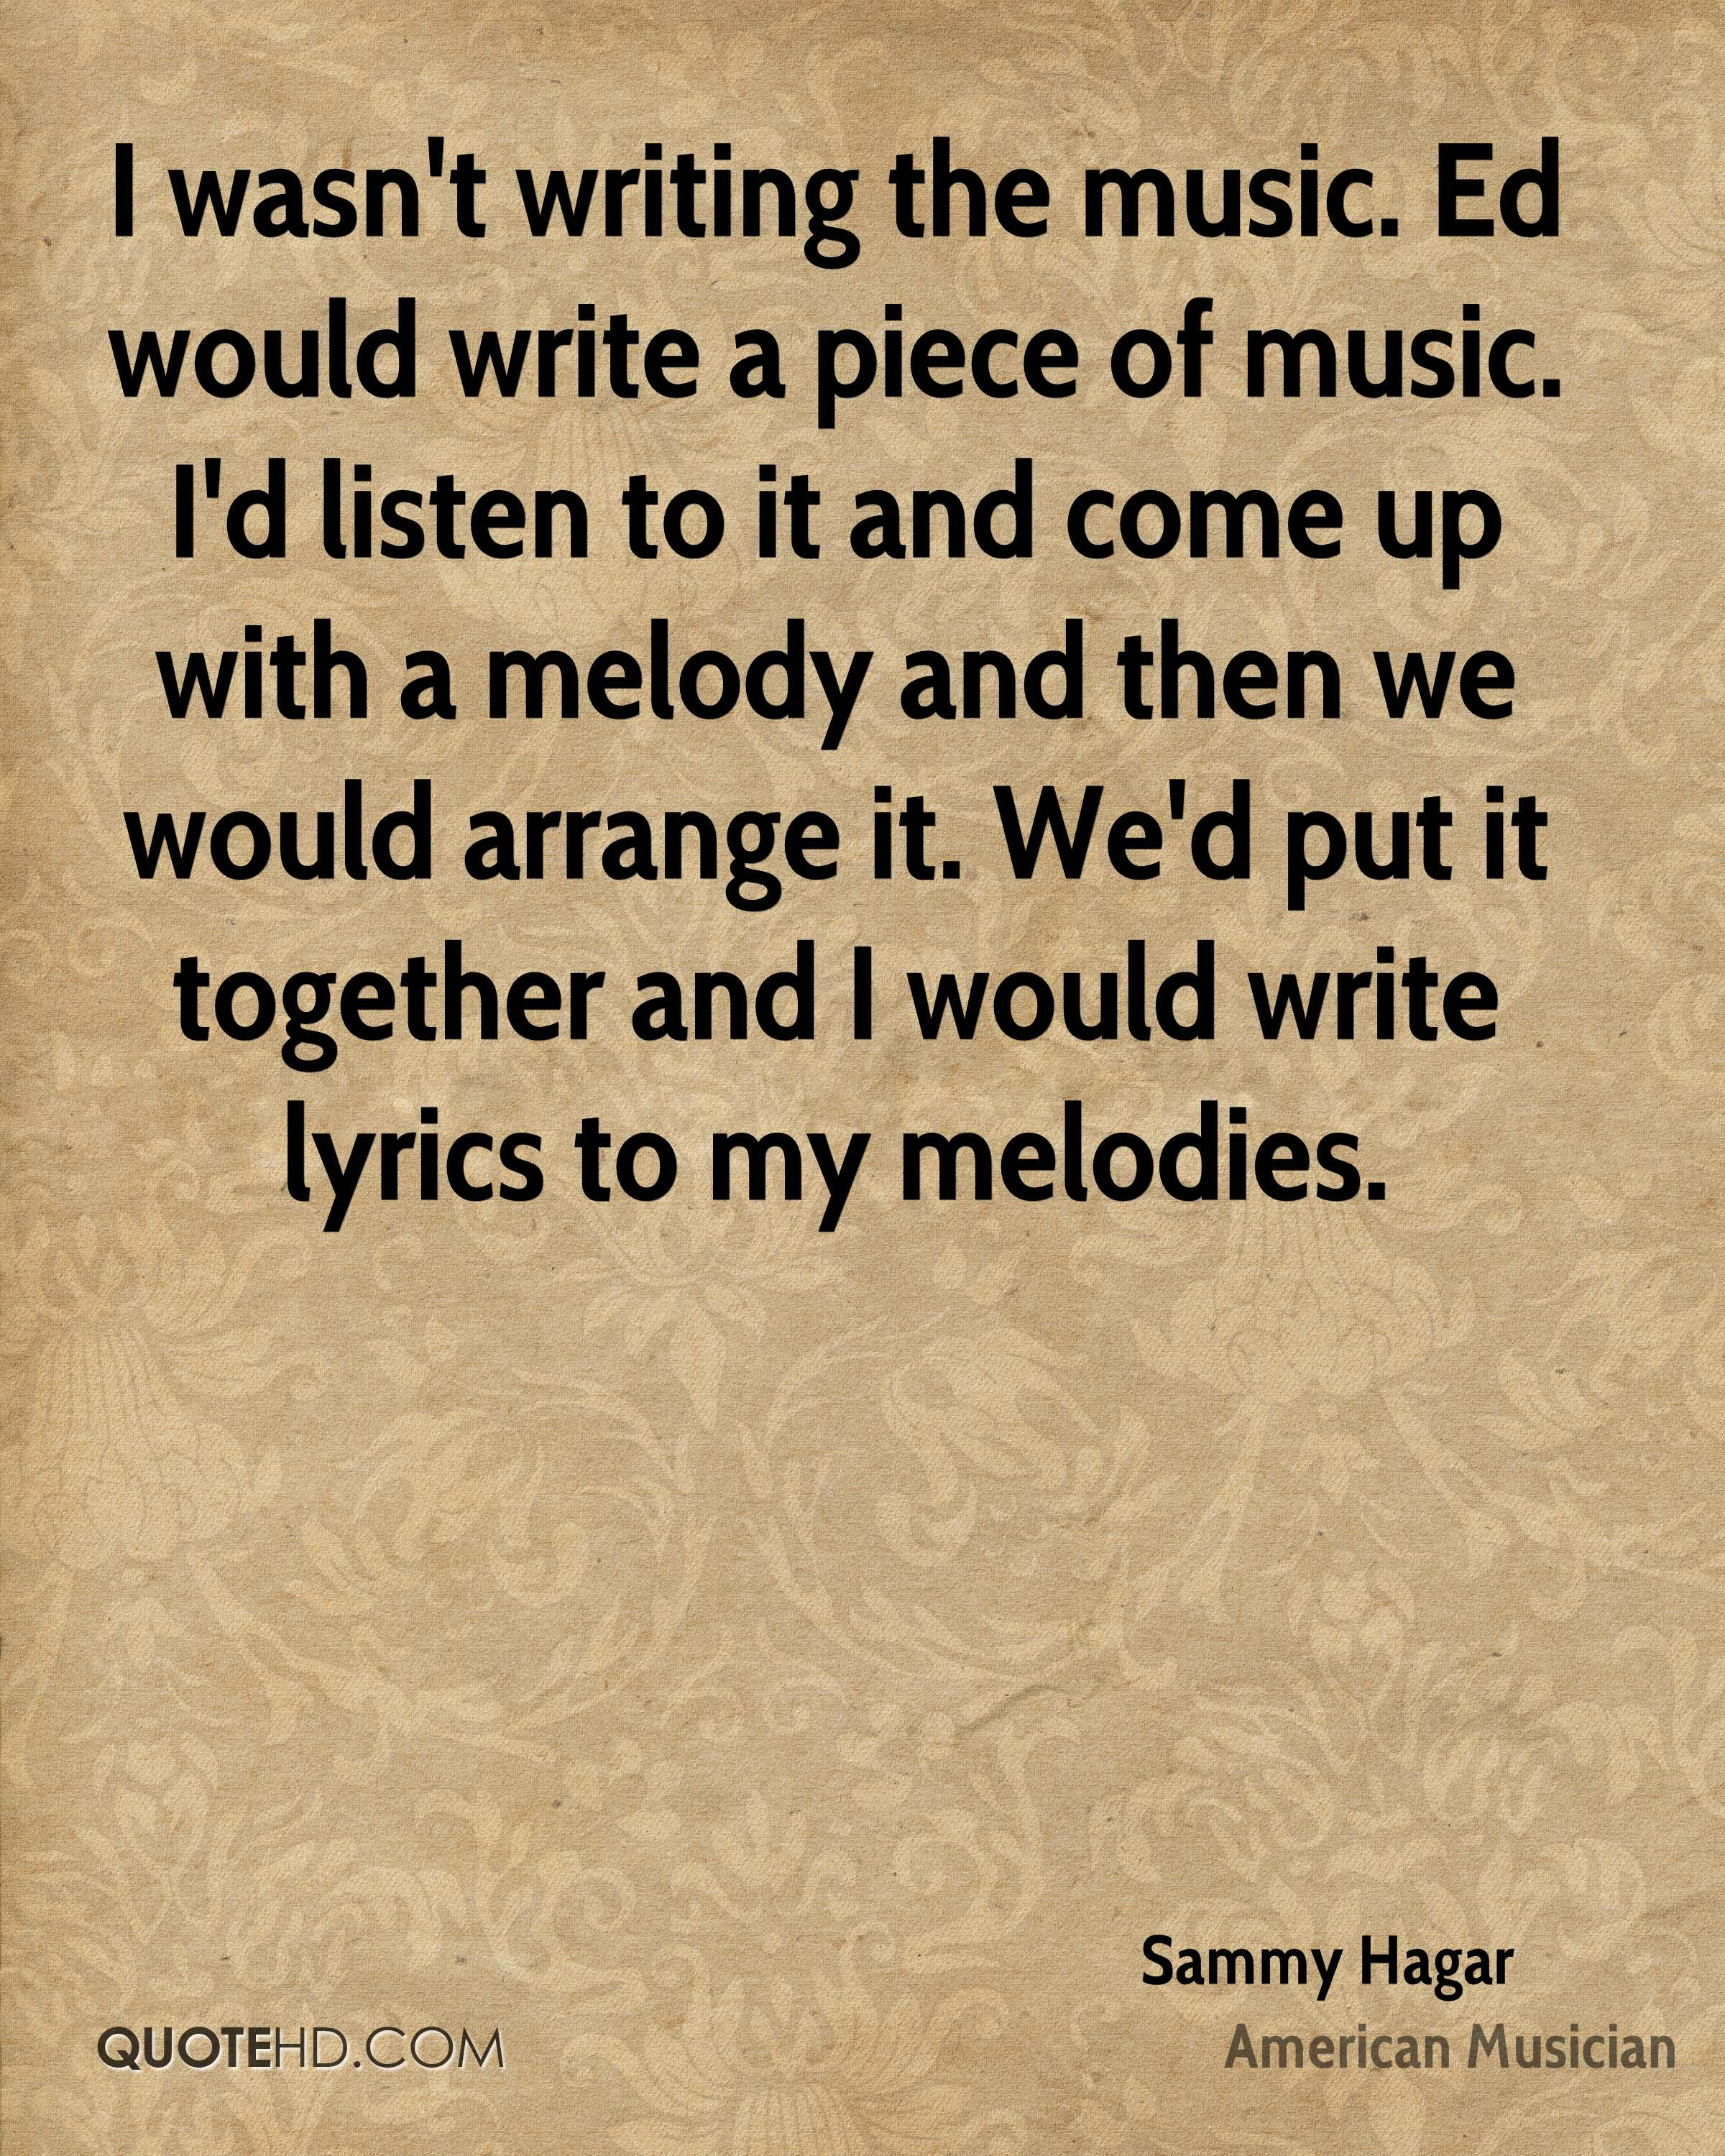 writing lyrics to music Write the lyrics for your song many musicians write their own melodies as well as the lyrics if you already have lyrics, consider them when writing your melody some questions to ask yourself before composing the music are: what words do i want to focus on.